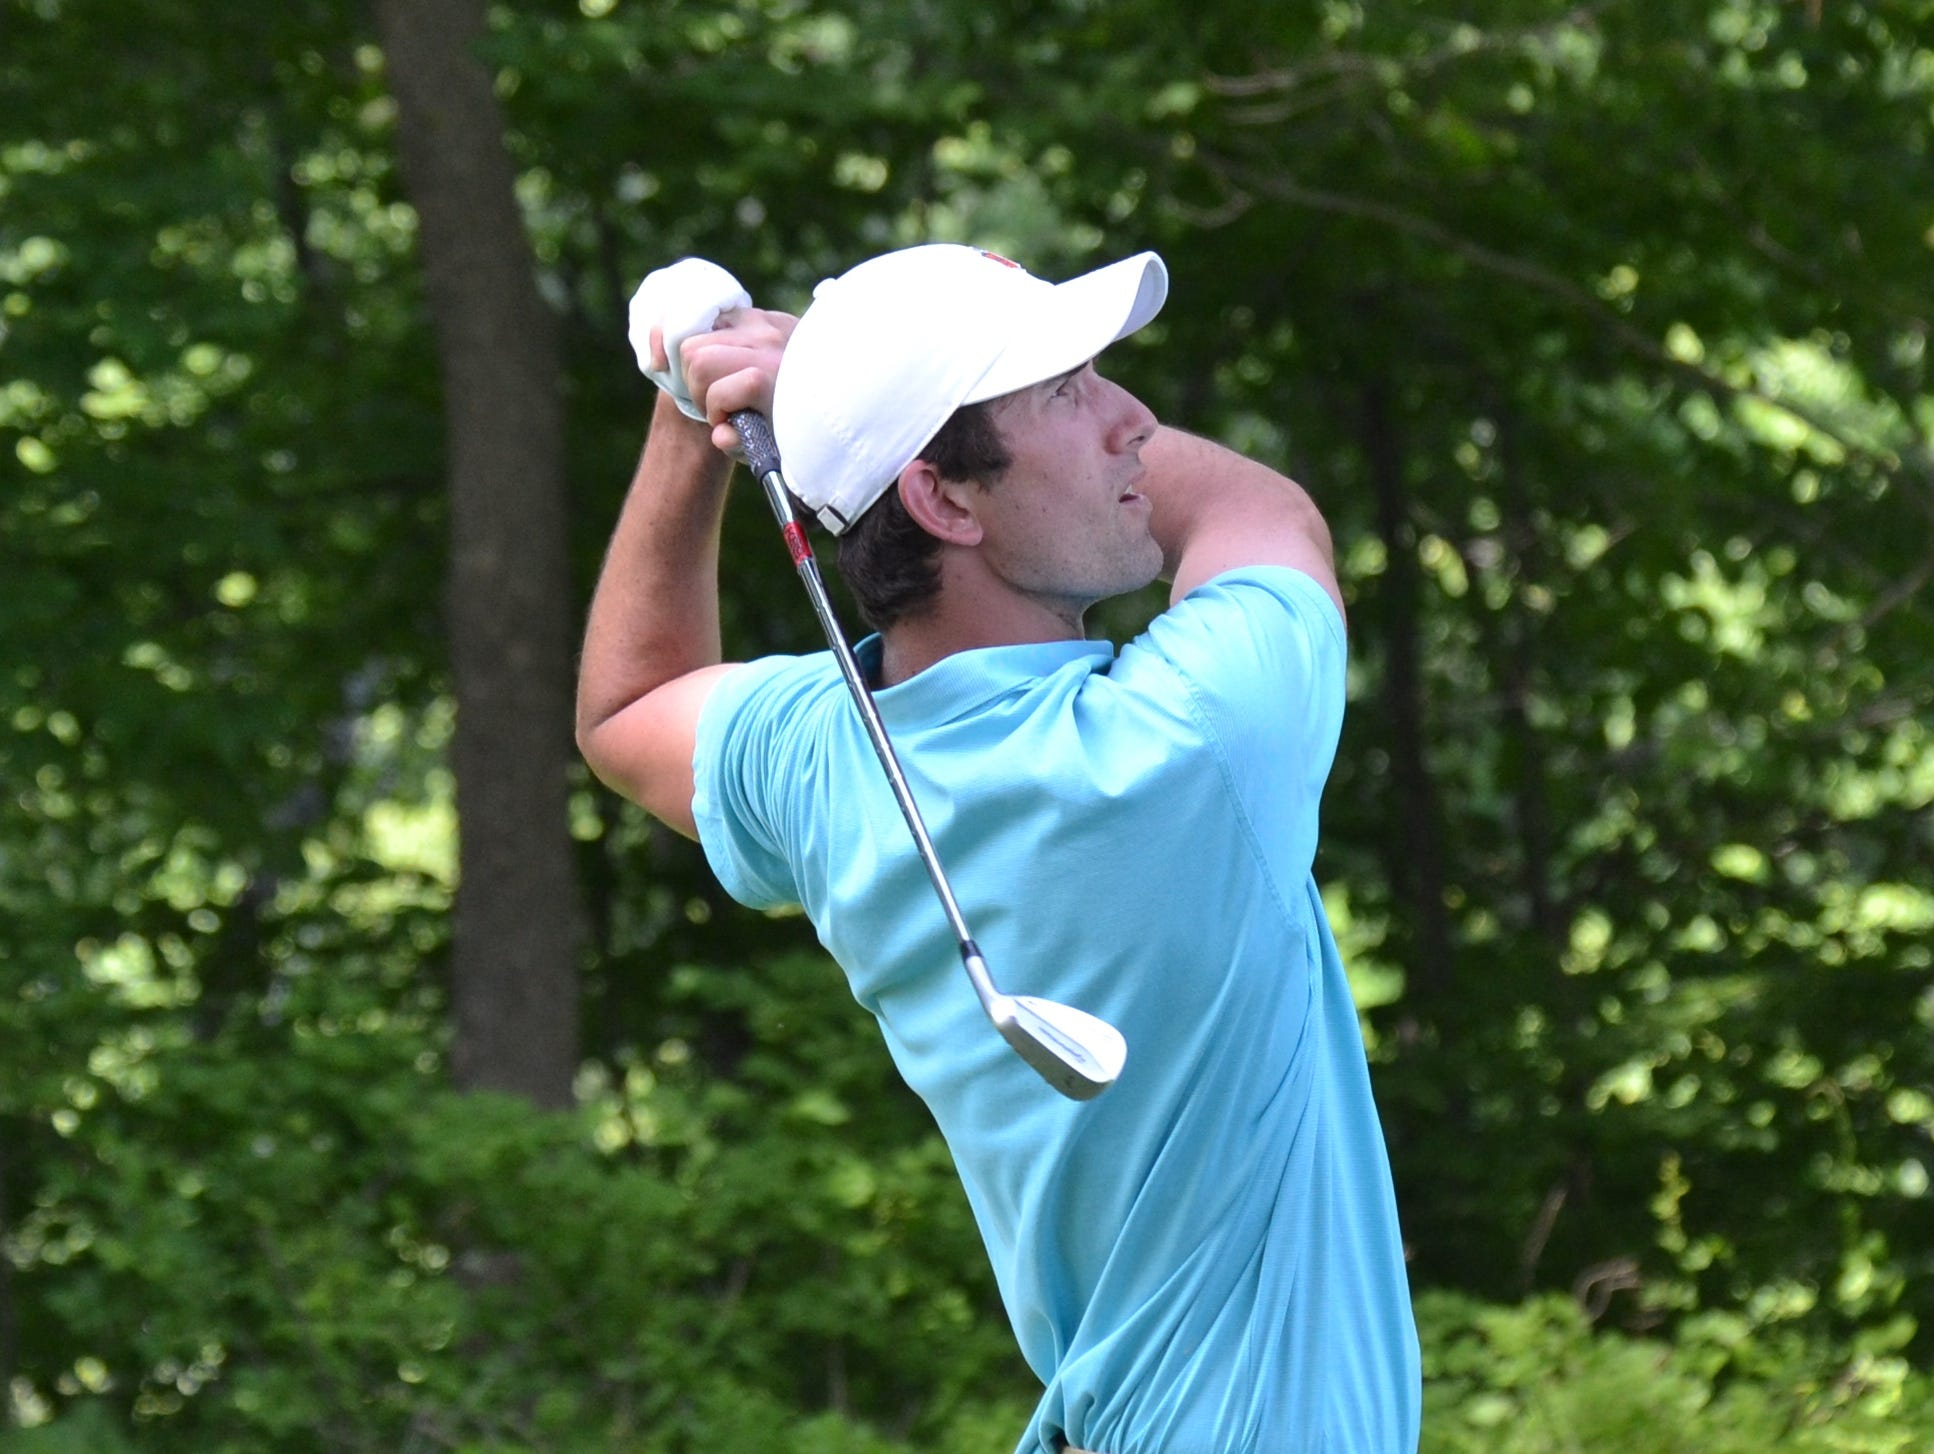 Stewart Hagestad, 25, is the 2016 MGA player of the year. Among his three victories this past summer is the Brae Burn Invitational.